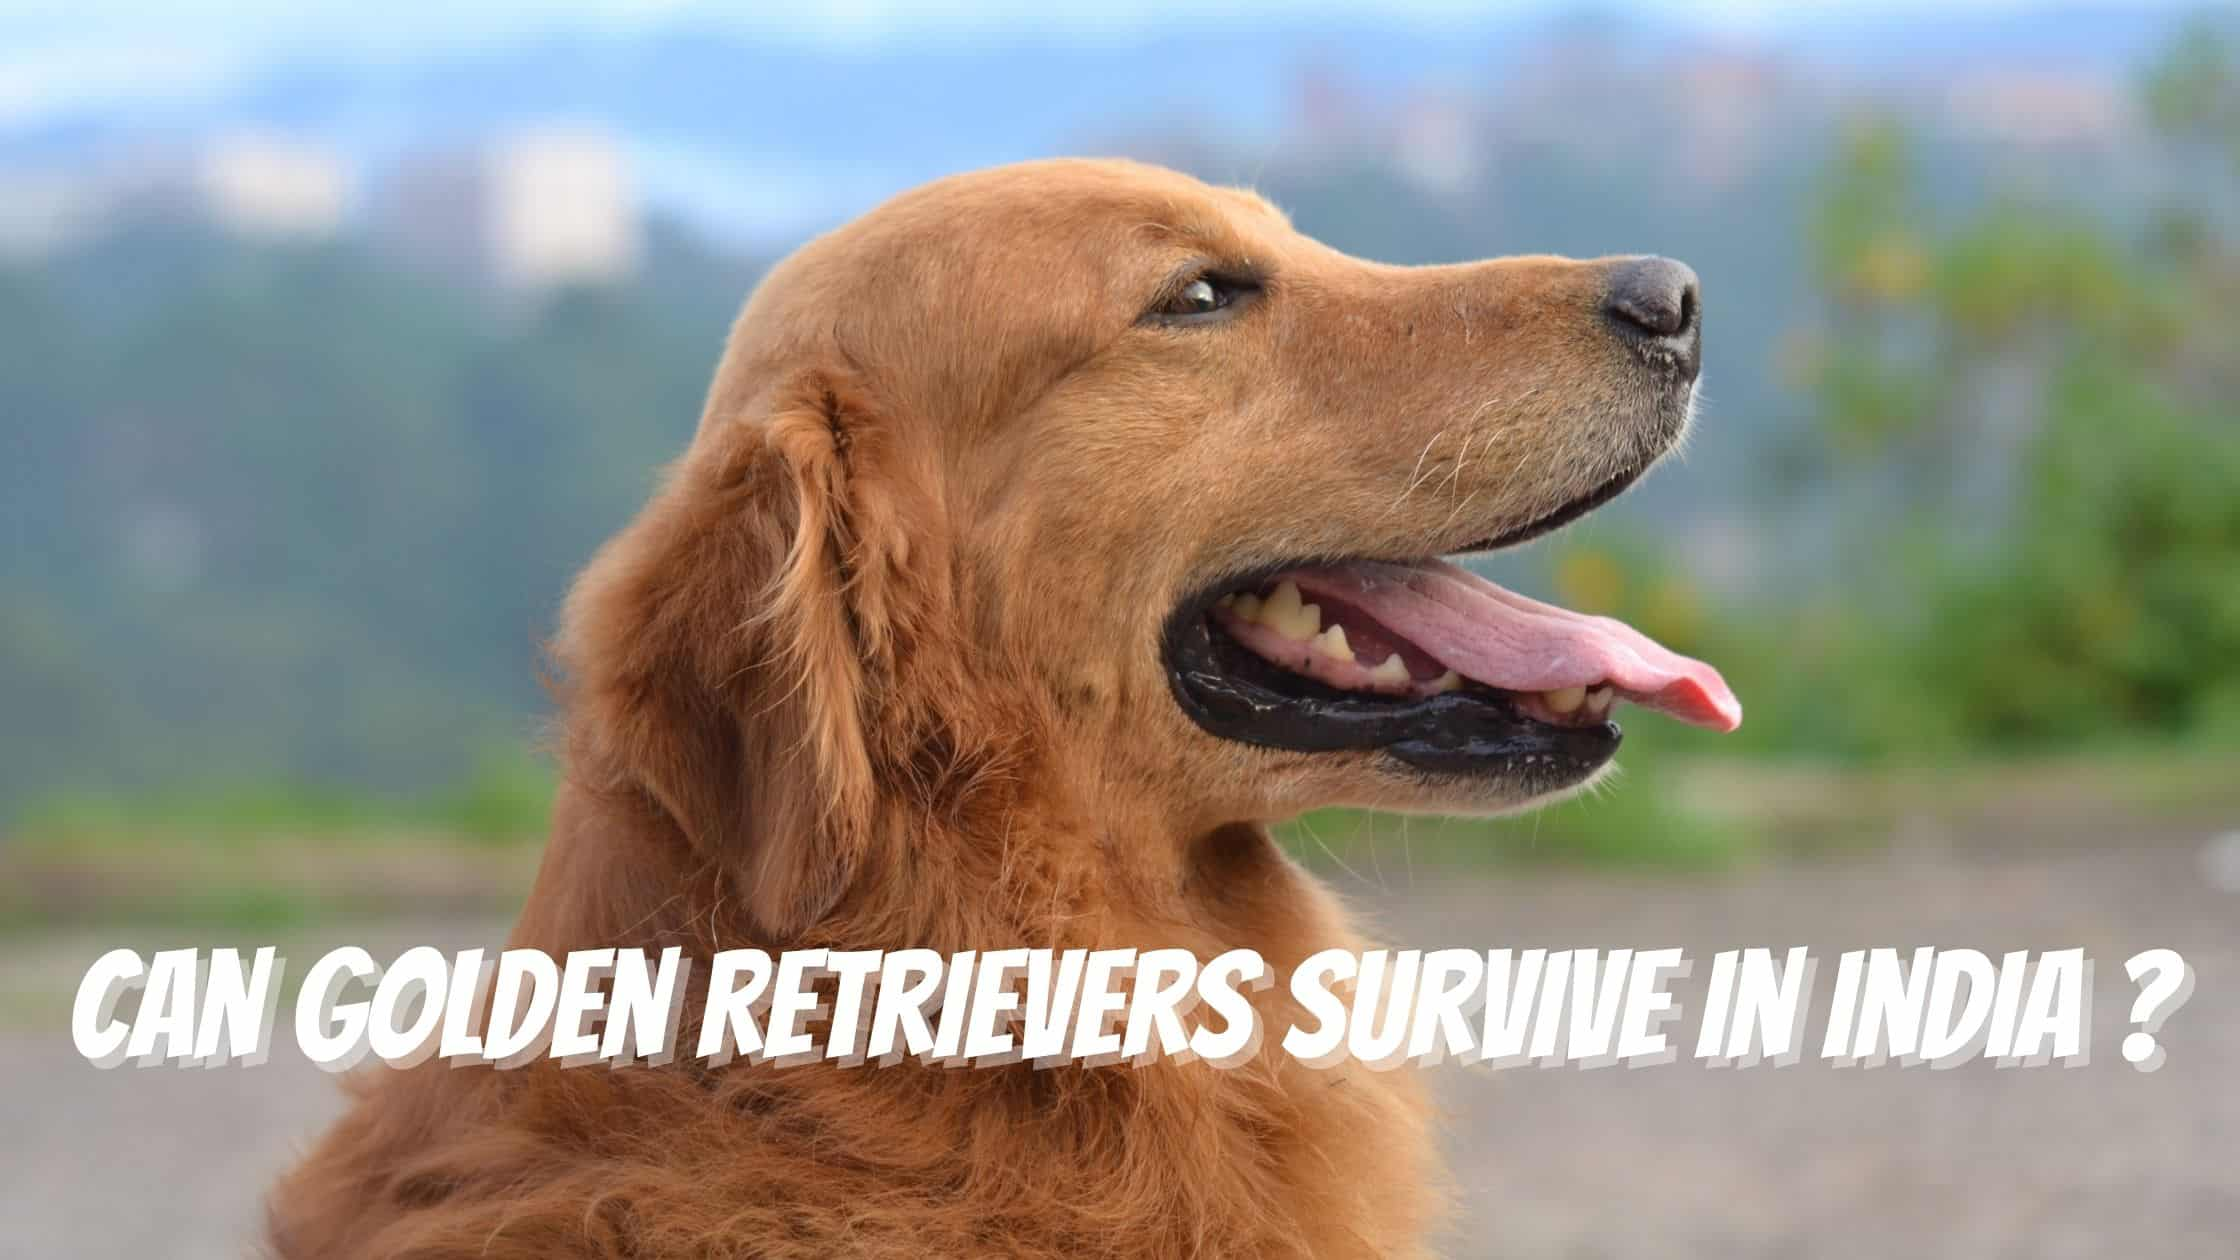 Can Golden Retrievers Survive In India